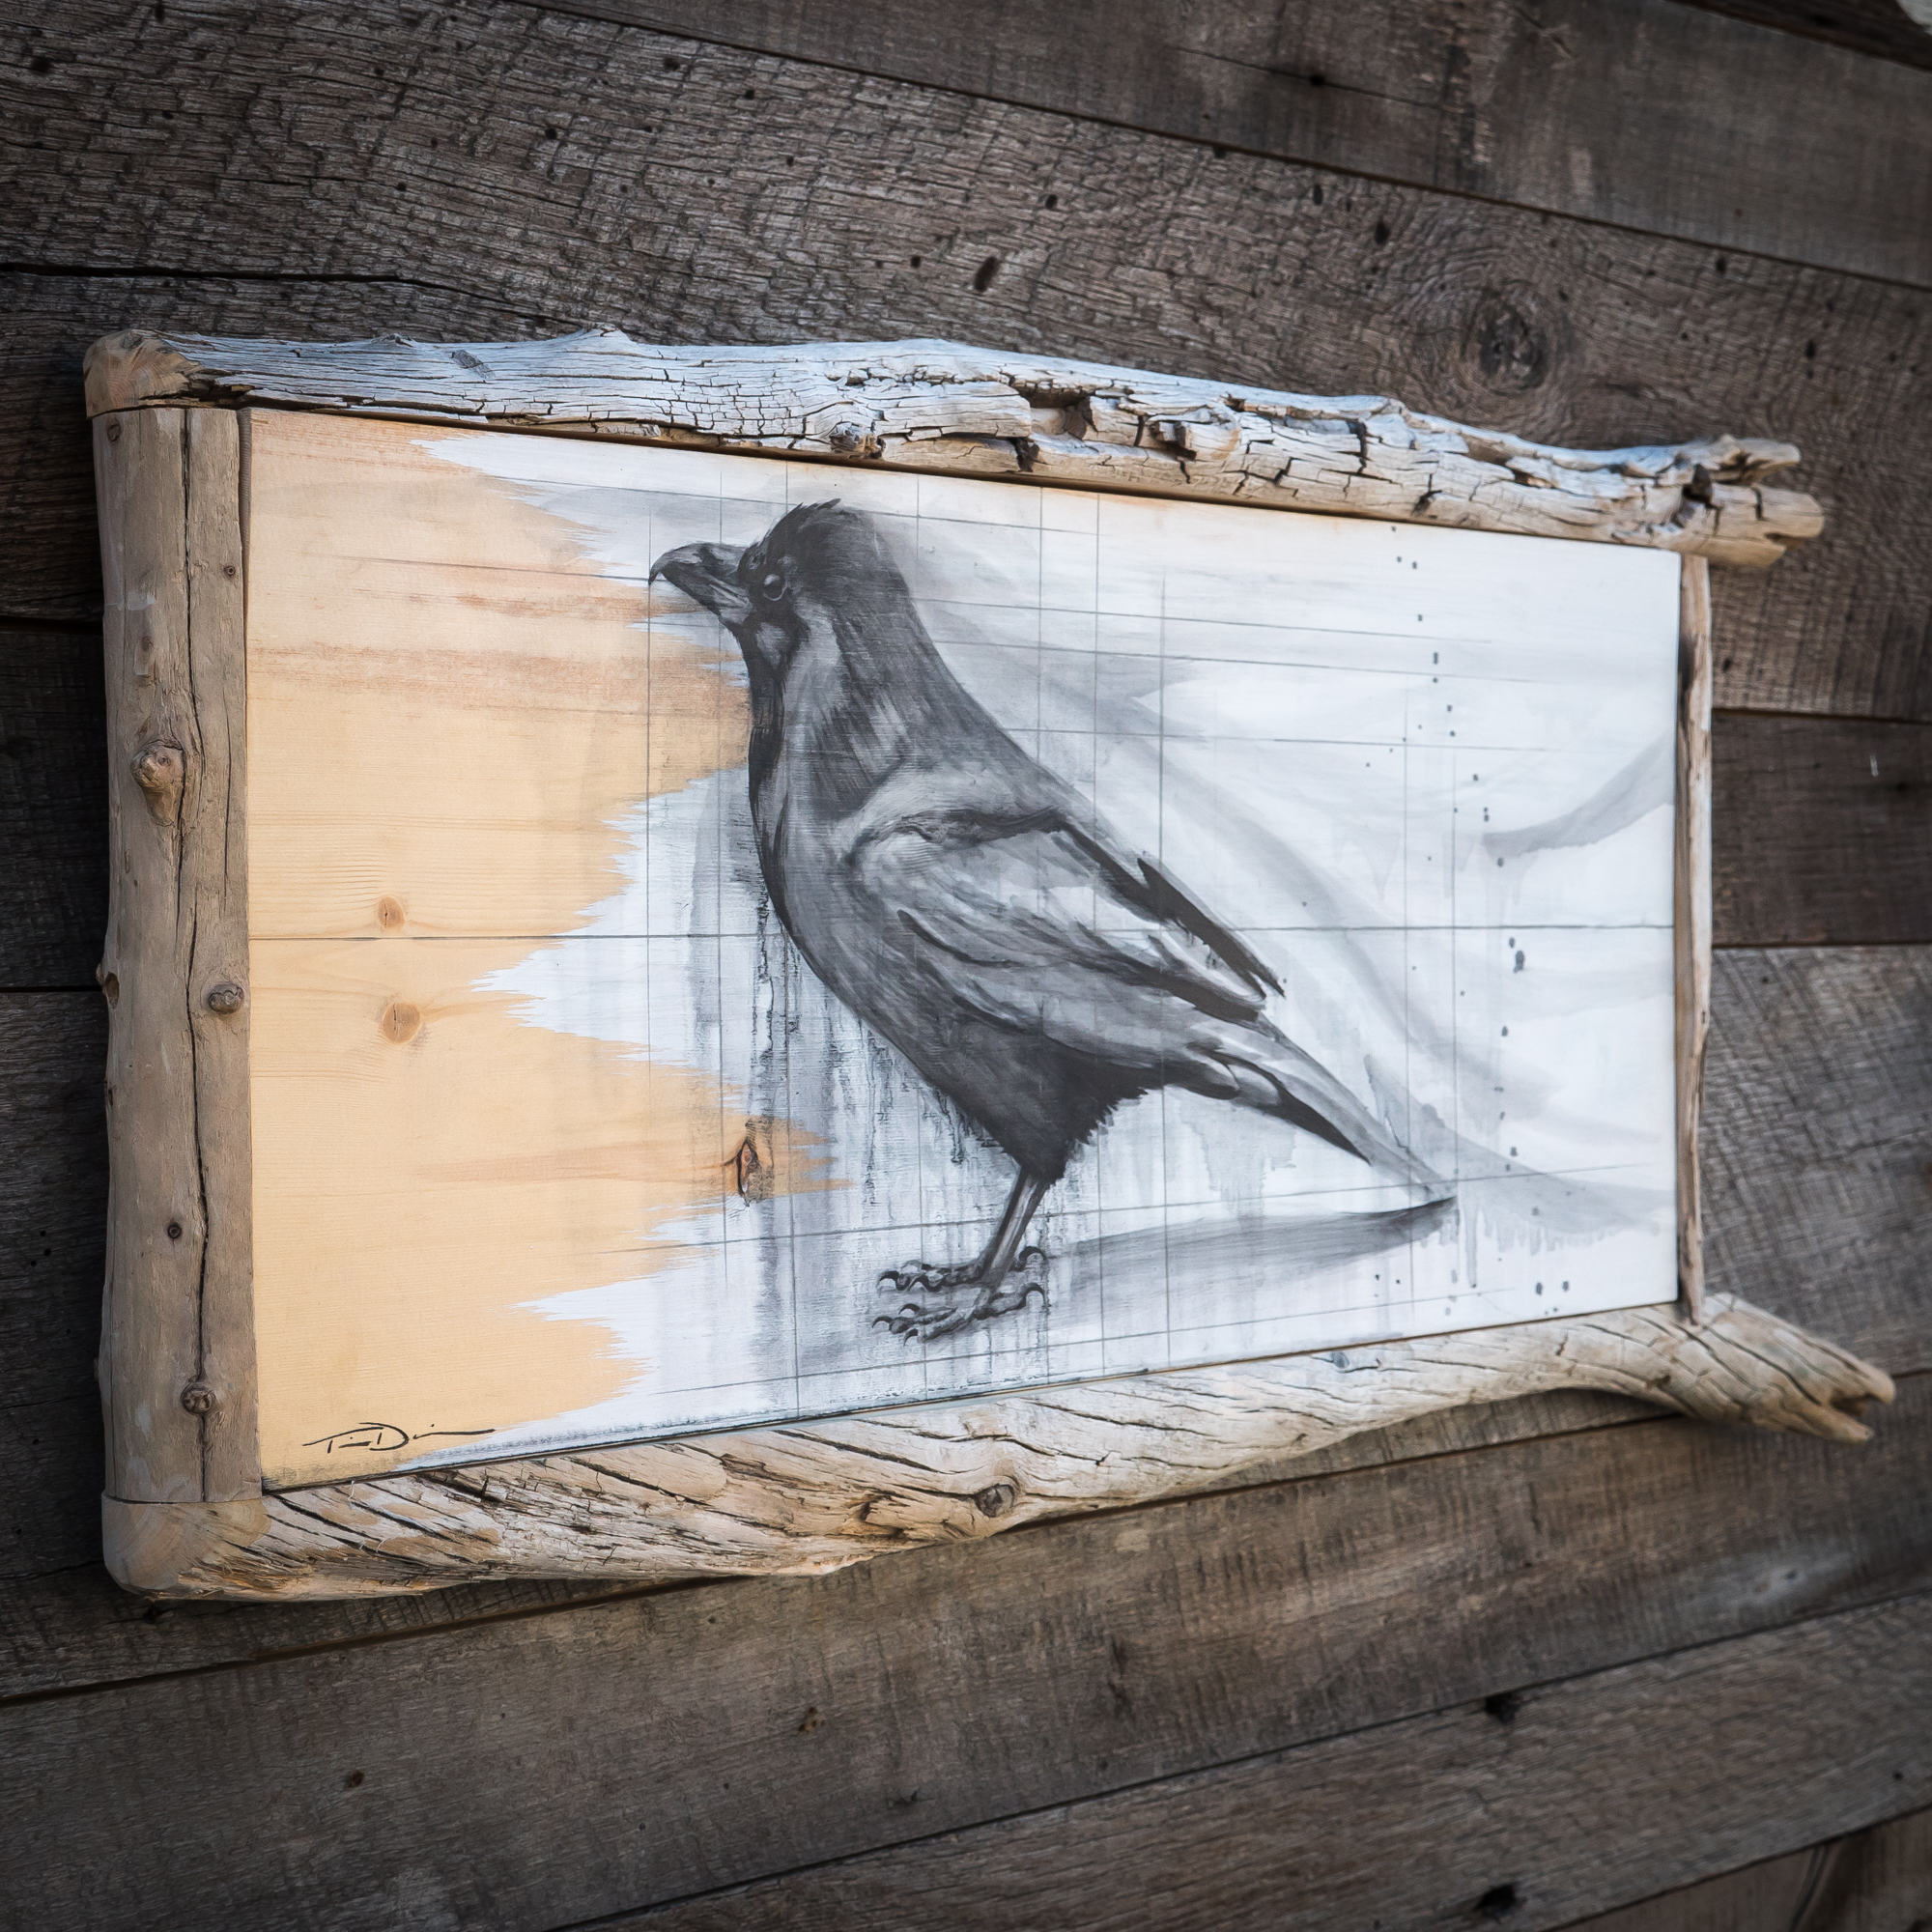 Yellowstone Raven - Original oil painting by wildlife artist Timothy Davison of the Davison Art Company featuring a raven looking up to the sky, with splashes of black paint. The painting appears to come off the surface, revealing the wood grain in the background. Custom framed with a driftwood frame. © COPYRIGHT TIMOTHY DAVISON